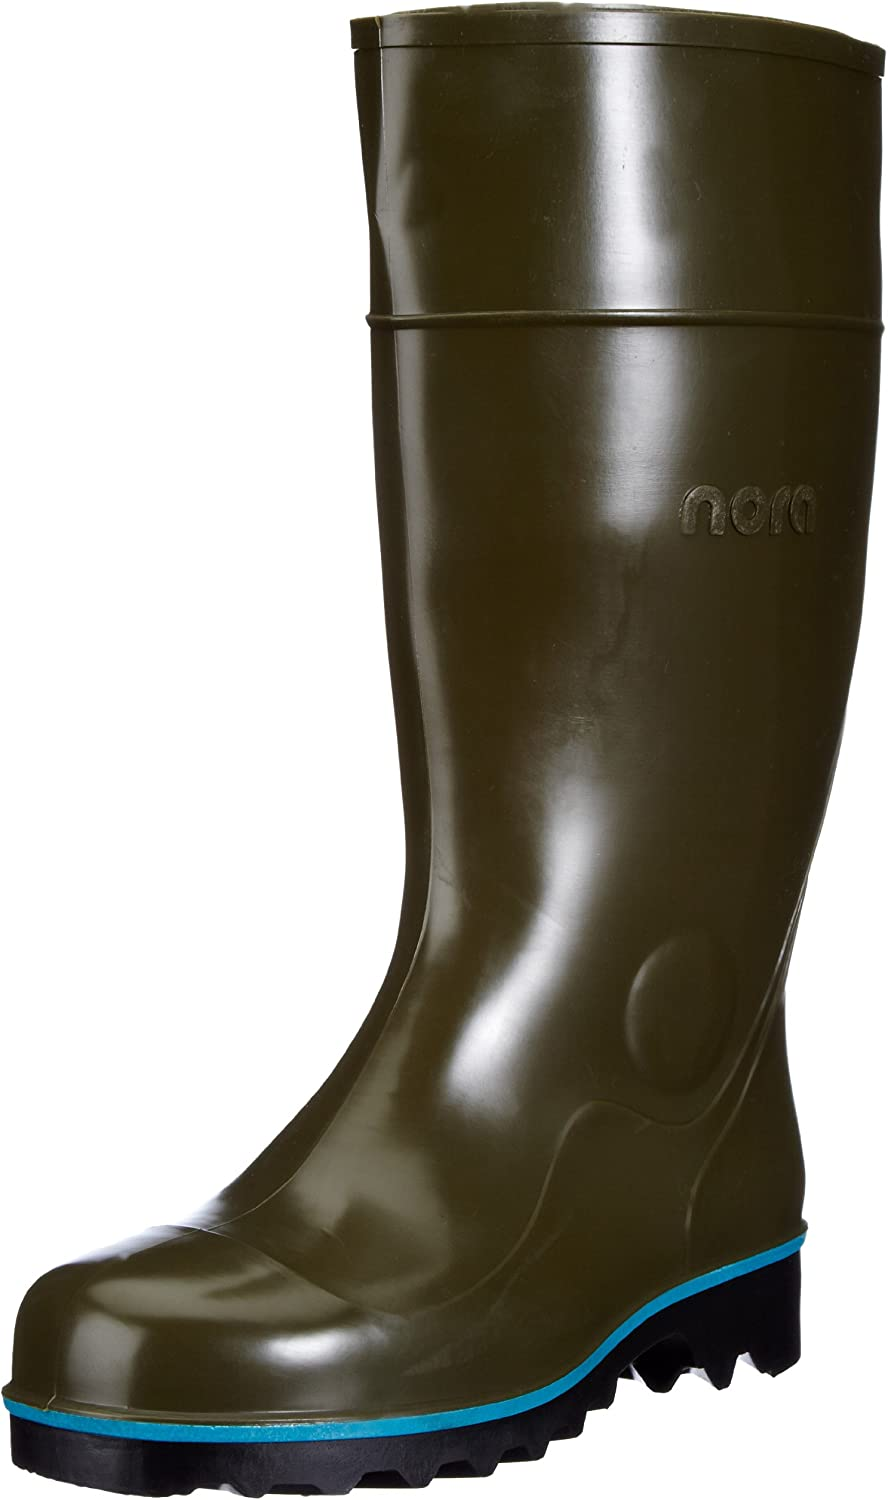 Nora Unisex Adults' Multi-Jan Work & Safety shoes - S4